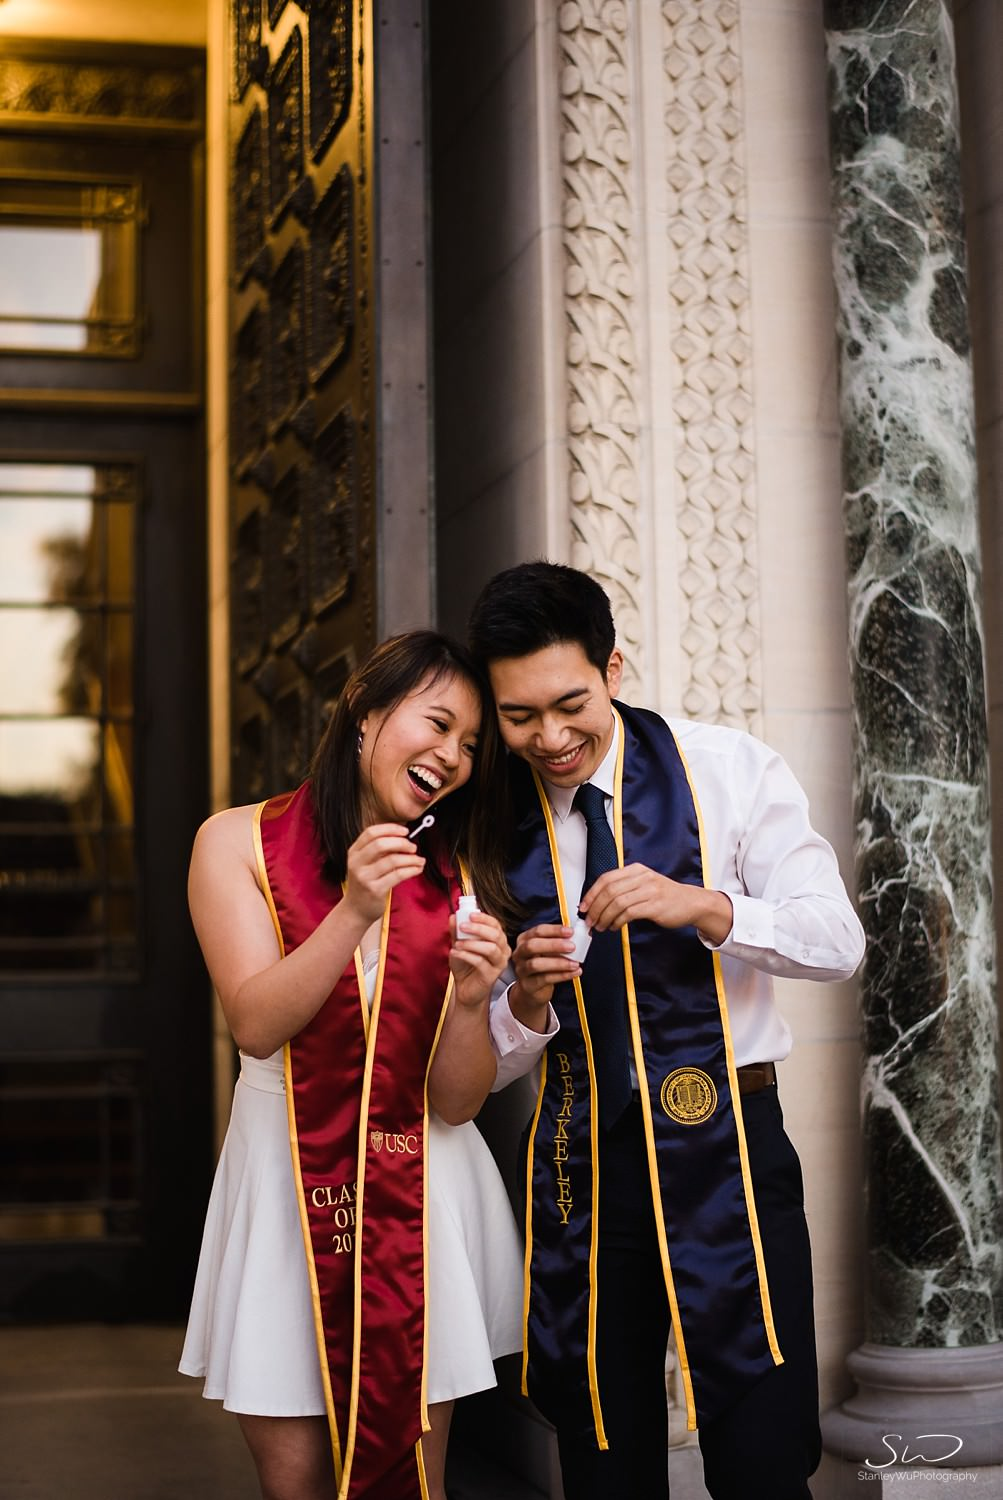 USC and UC Berkeley couple holding bubbles while wearing graduation sash UC Berkeley senior Facetiming in front of Doheny Library | Los Angeles Graduation and Senior Portrait Photographer